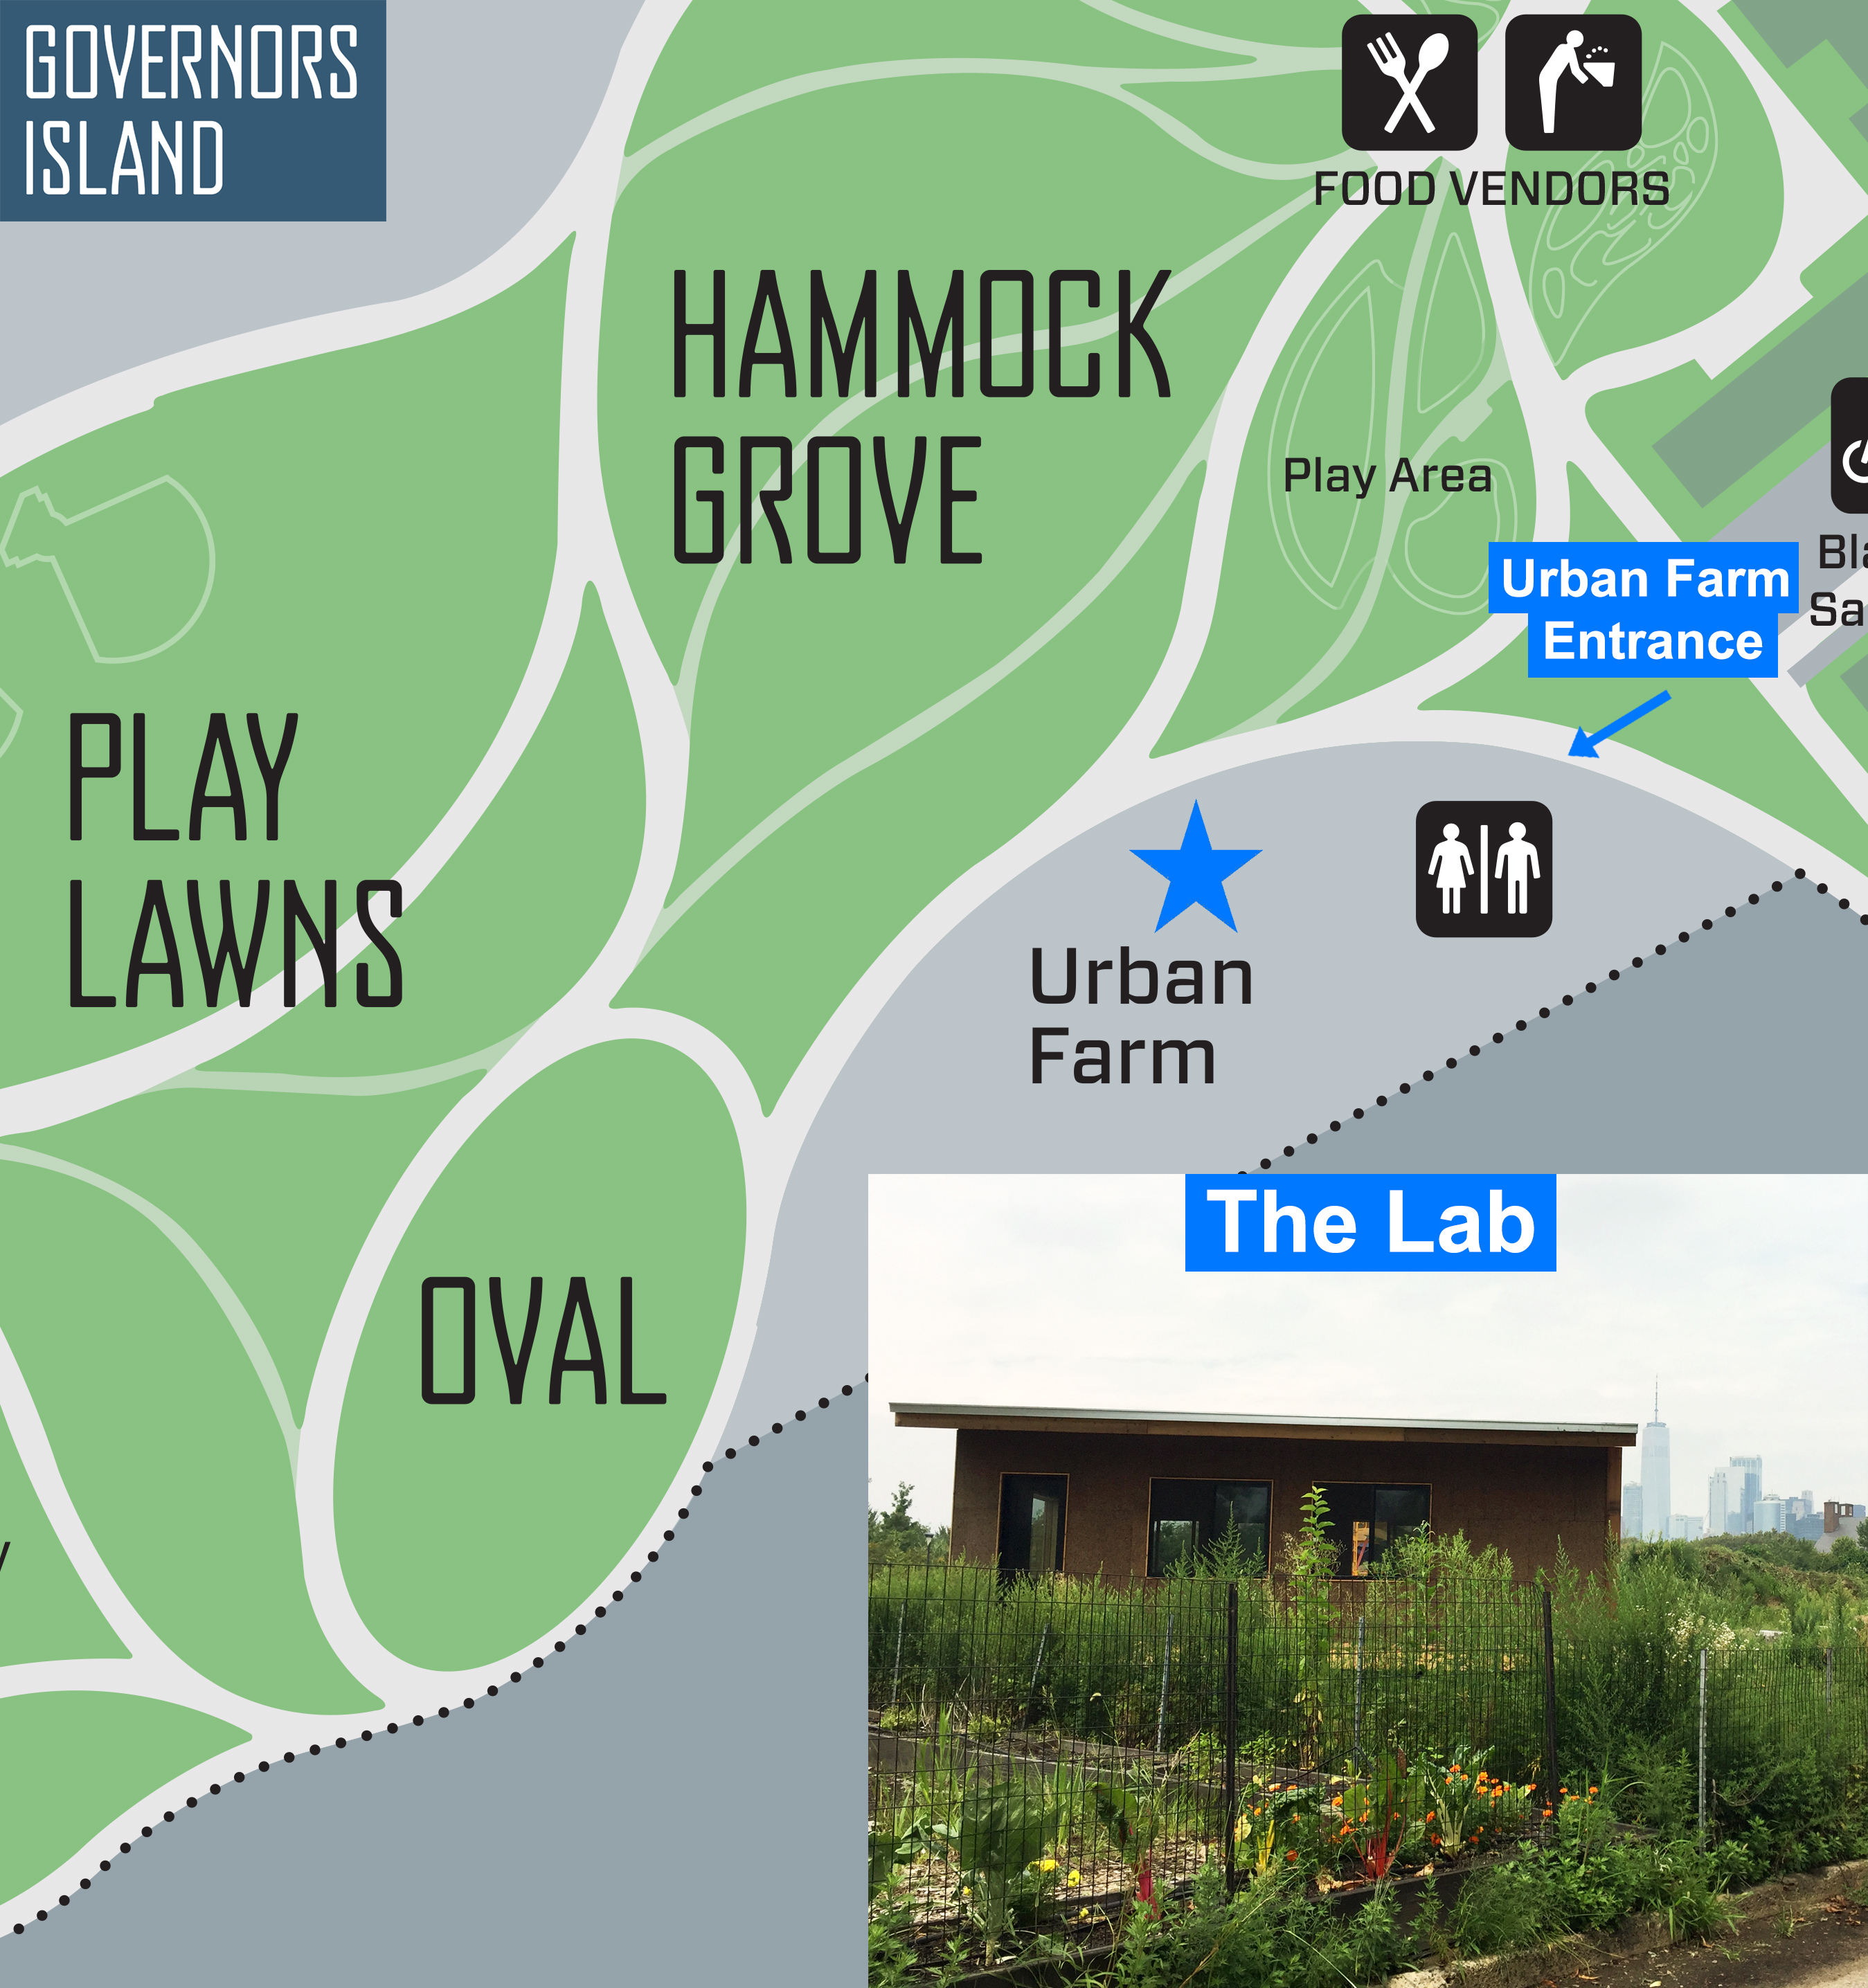 Social Practice Queens   SPQ Goes to Governors Island Oct 5th! on bayside queens ny map, queens west map, queens ny neighborhood street map, queens new york city neighborhood map, college point new york map, college point queens map,